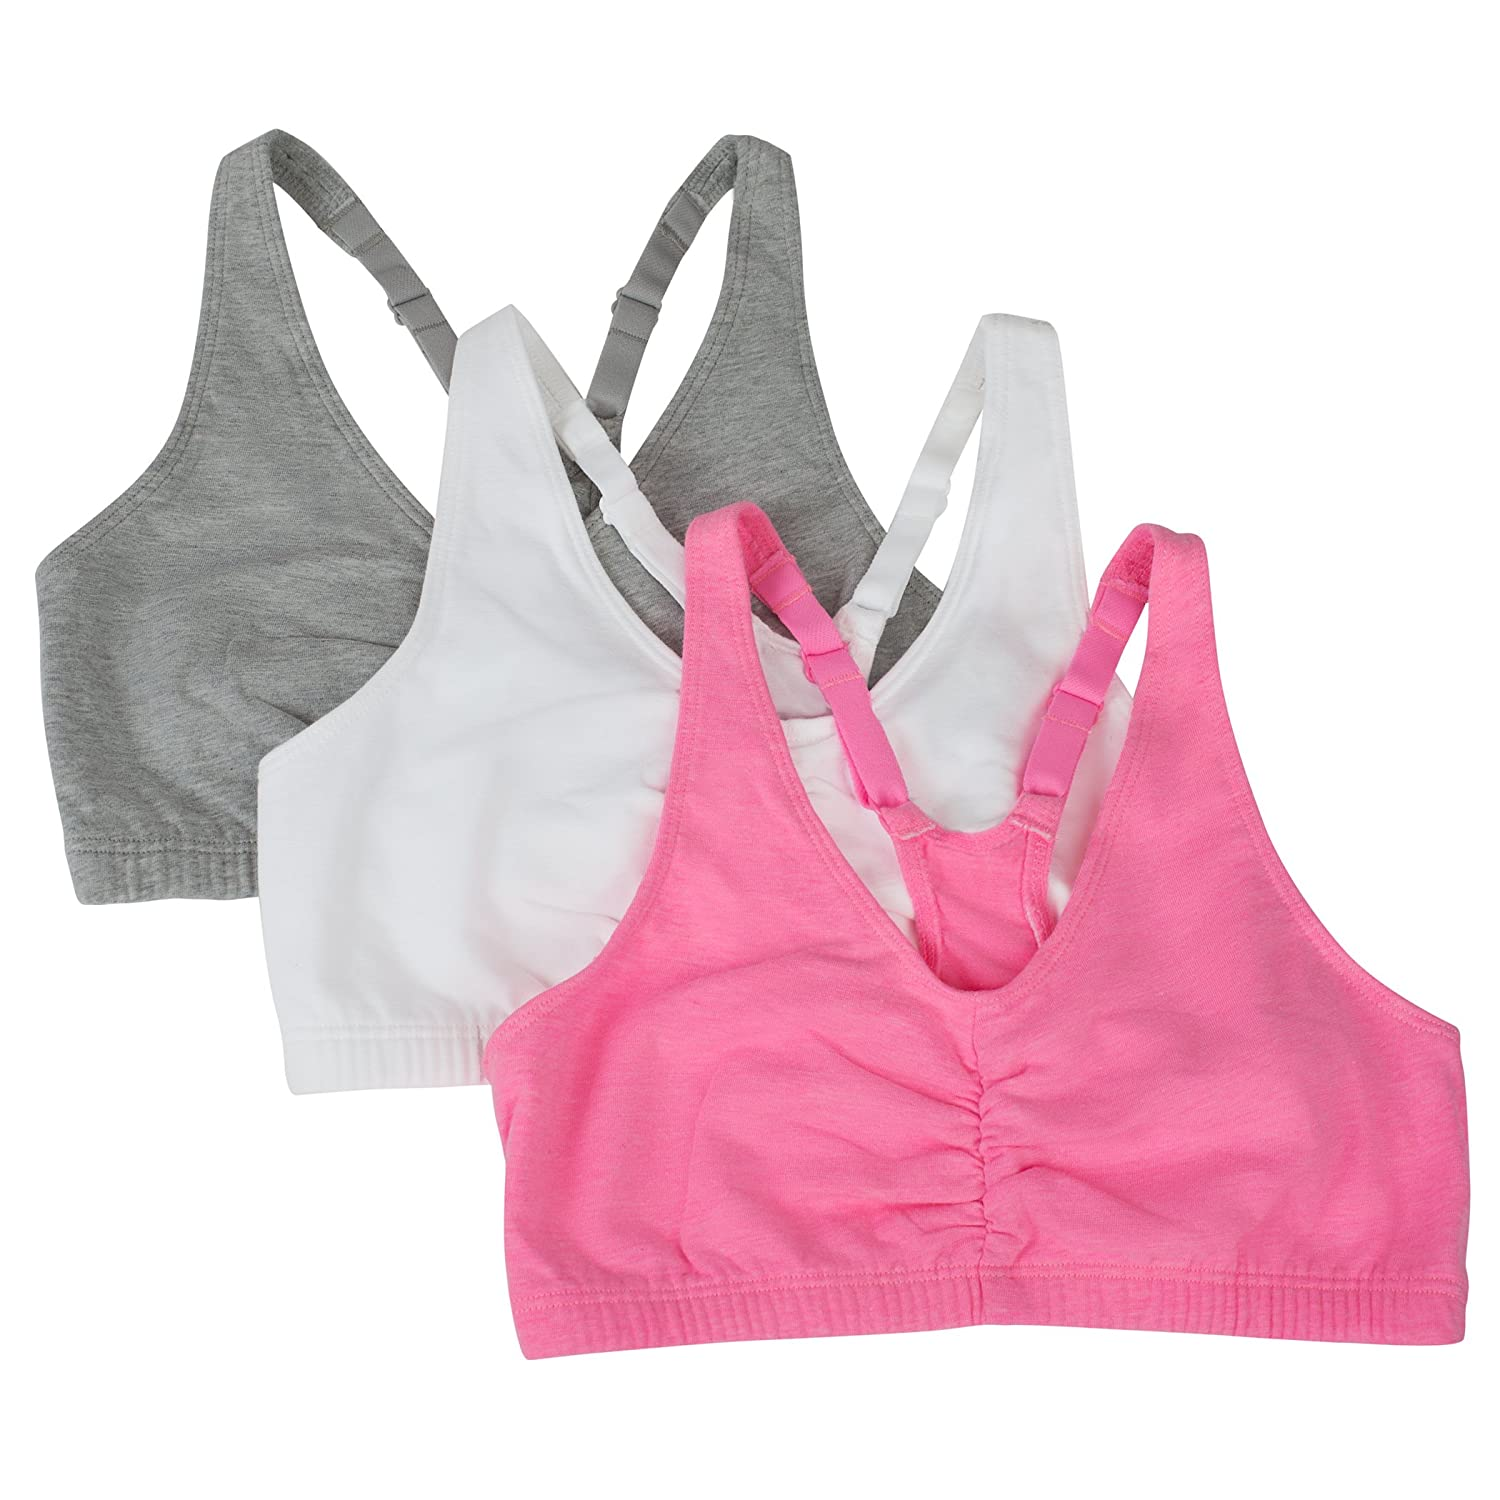 Fruit of the Loom Women's Adjustable Shirred Front Racerback Bra (Pack of 3) 90011